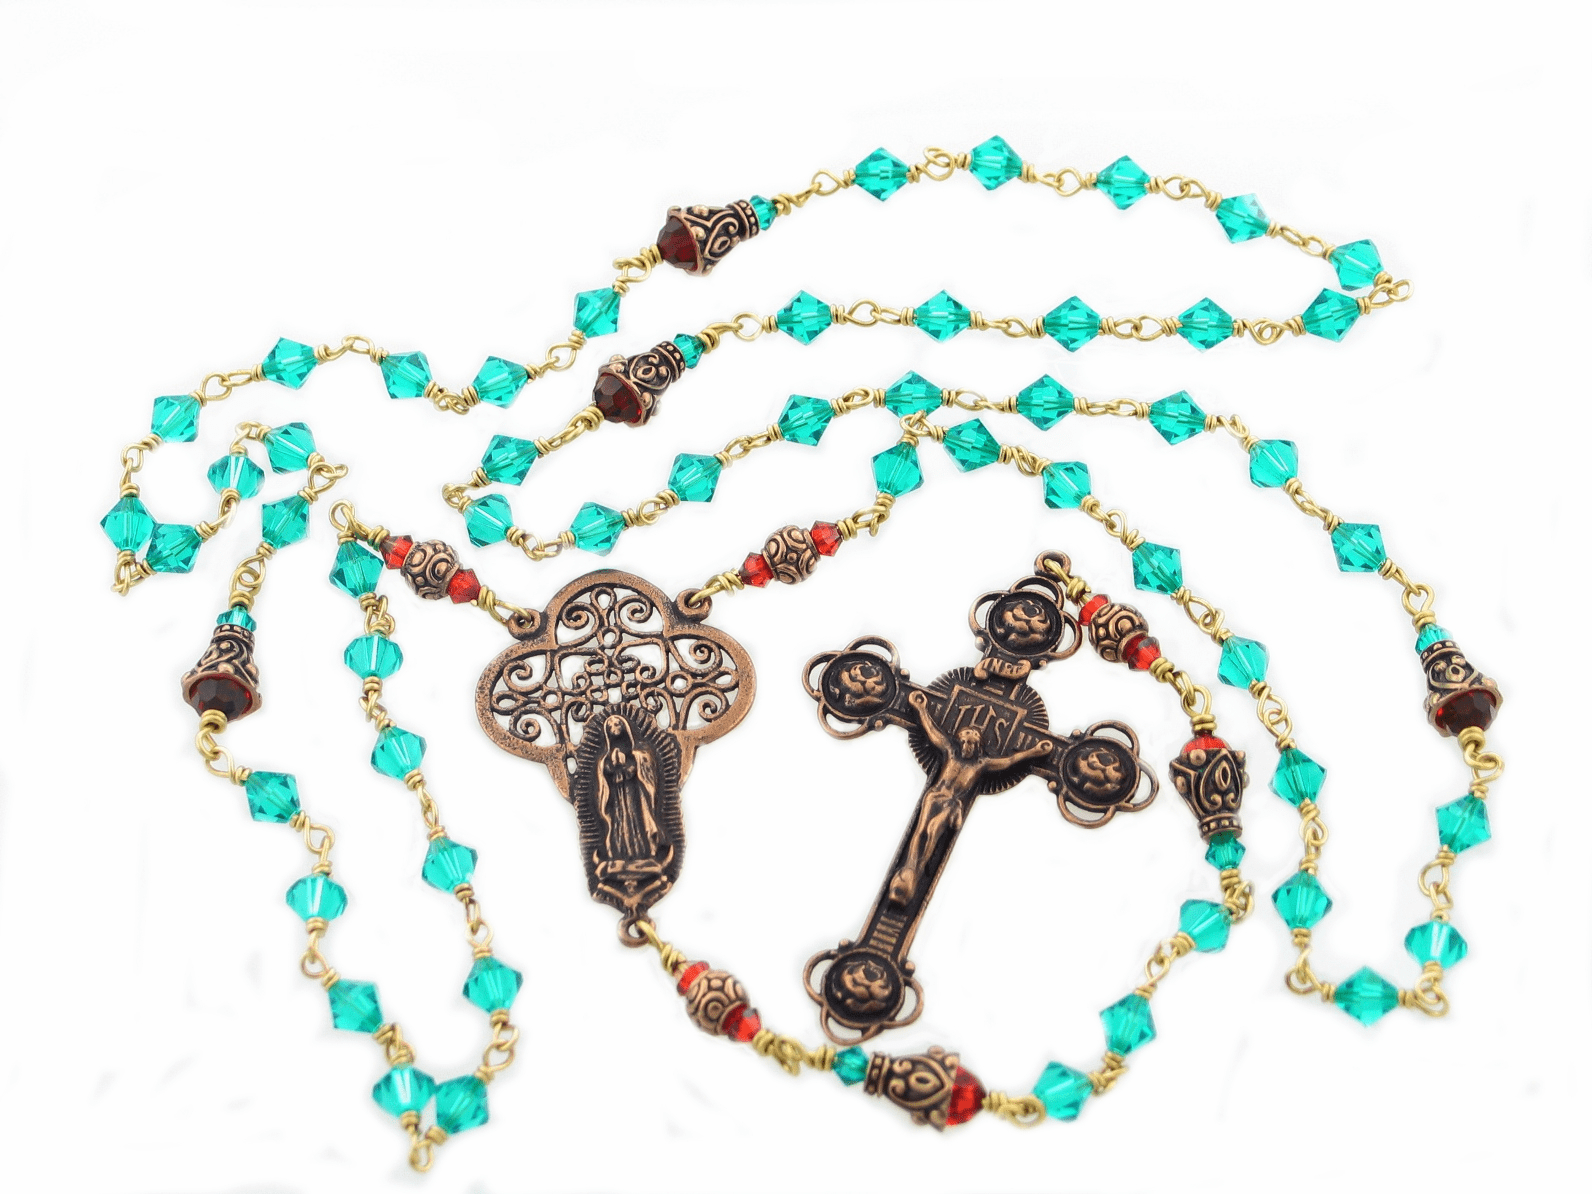 Heavenly Divine Our Lady of Guadalupe Swarovski Wire-Wrapped Rosary